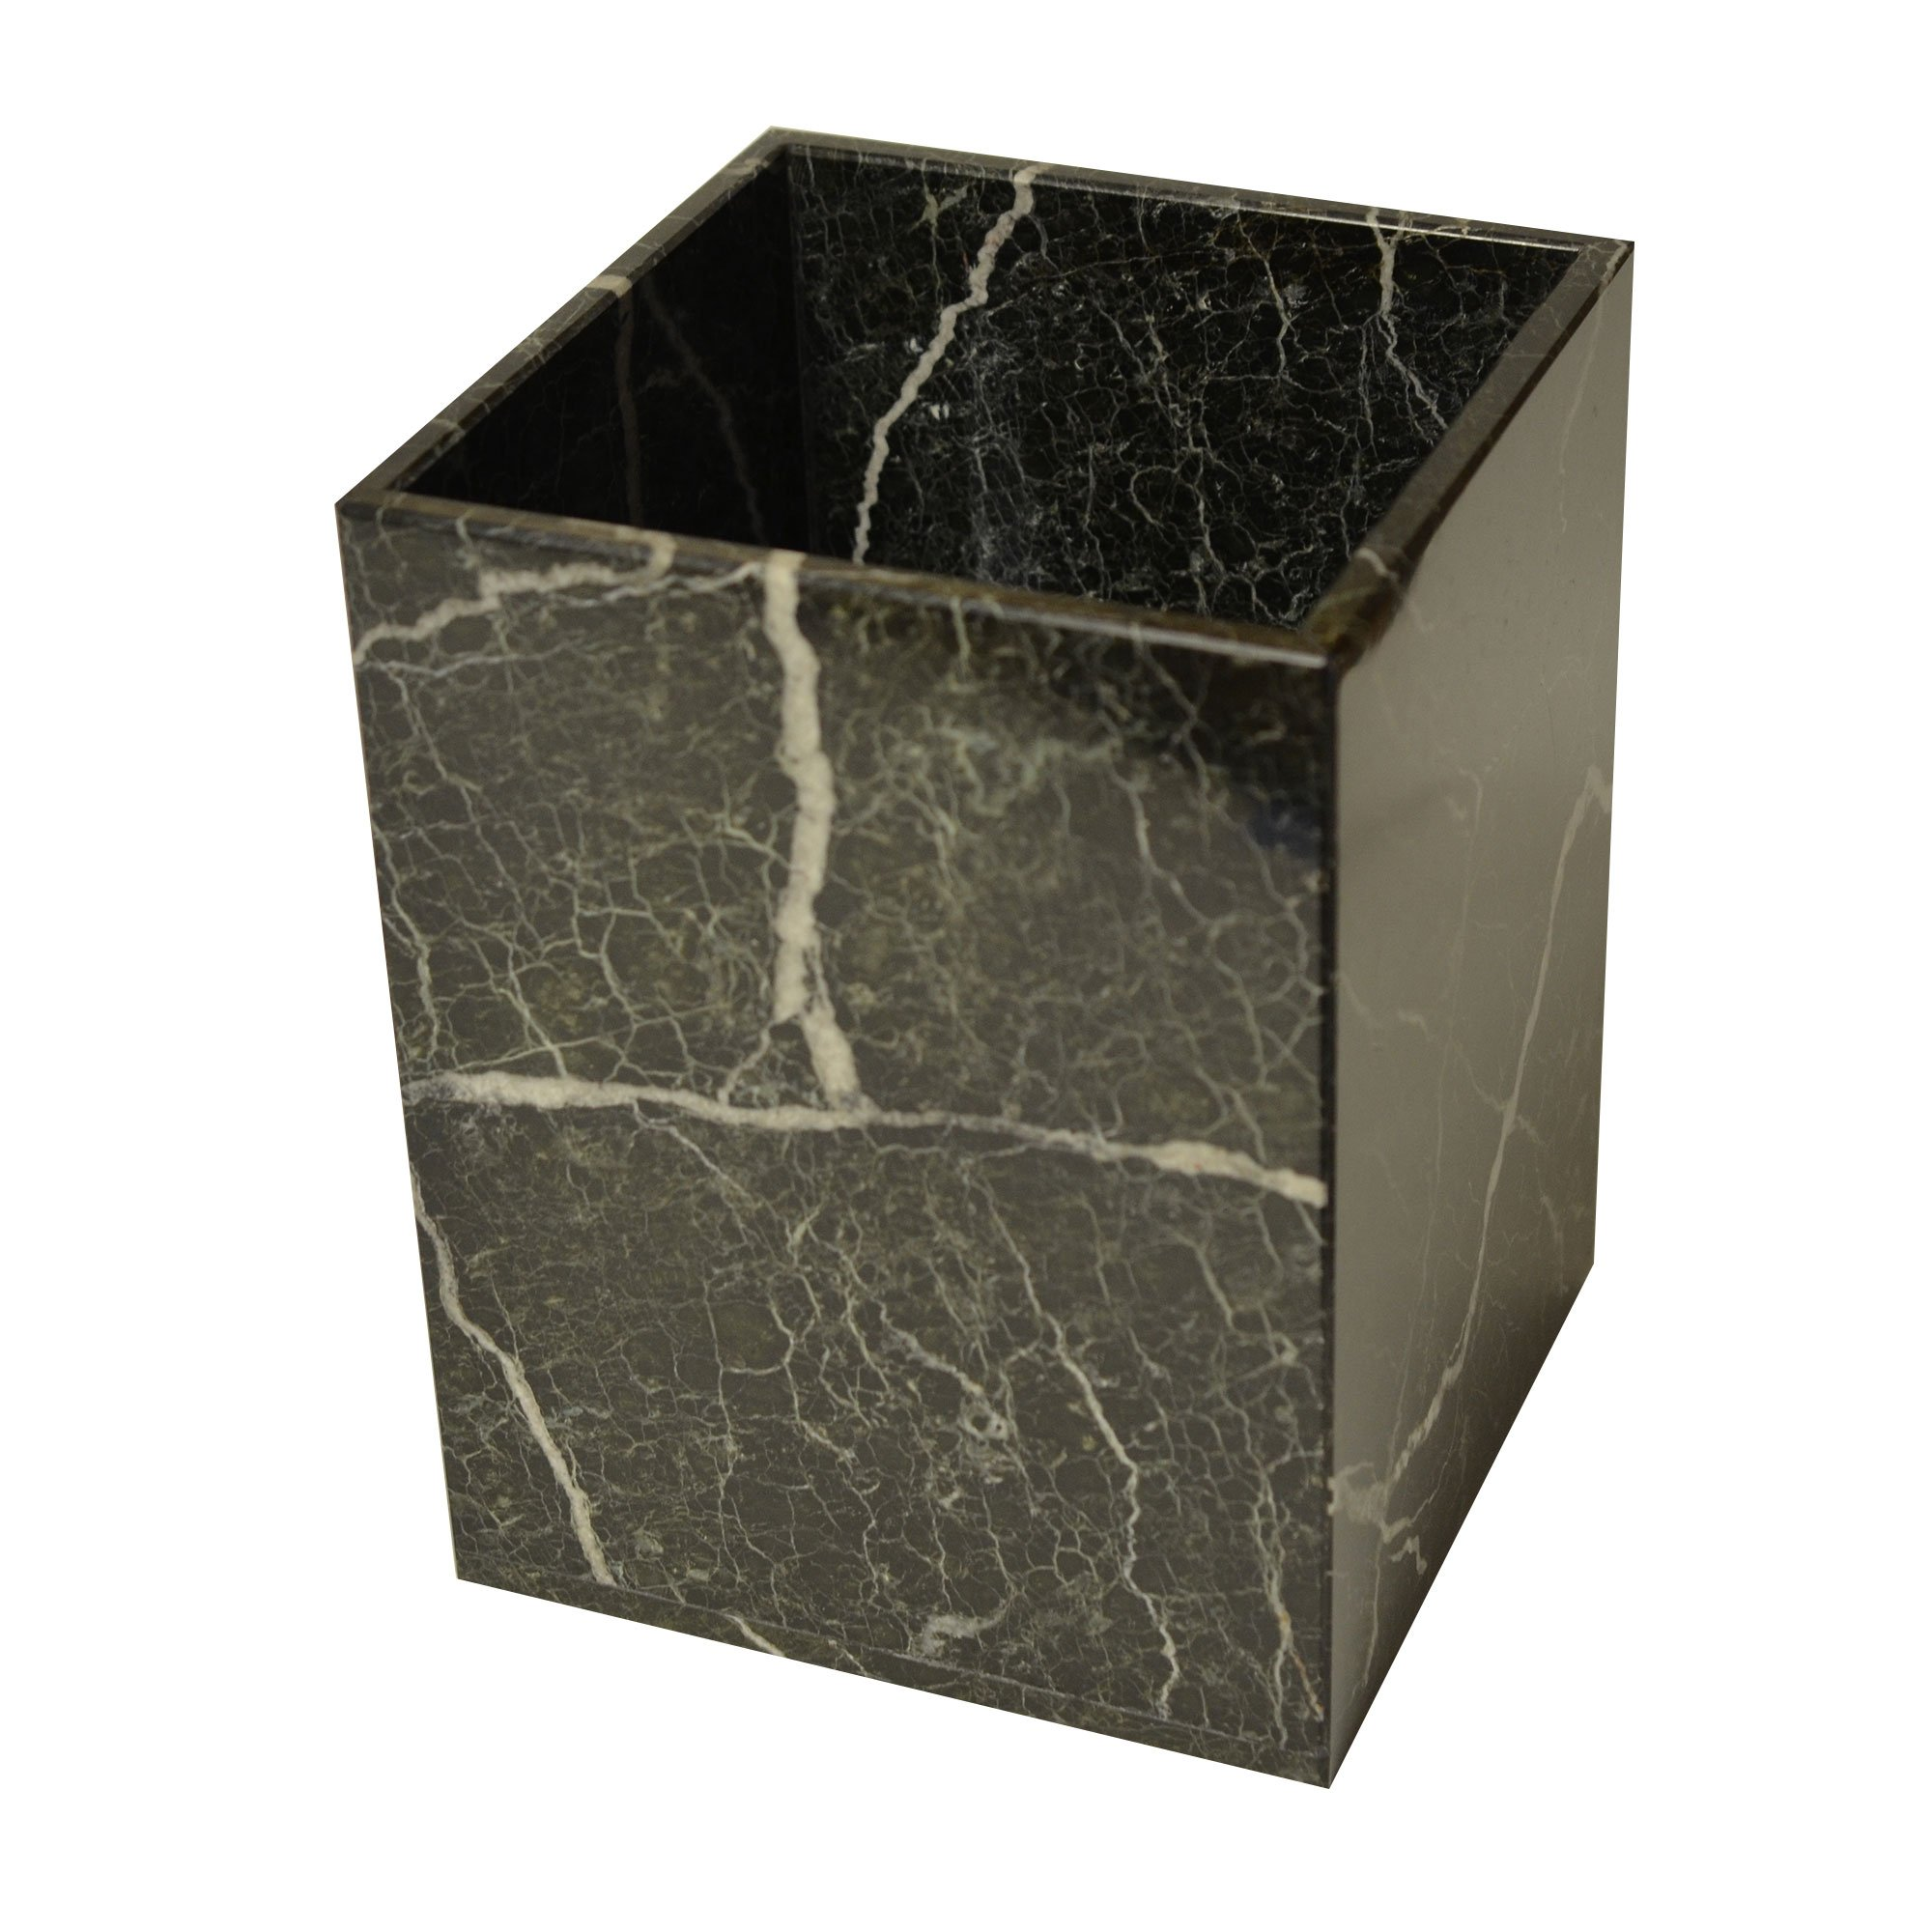 Polished Marble Wastebasket, Black Zebra Shower and Bathroom Accessory